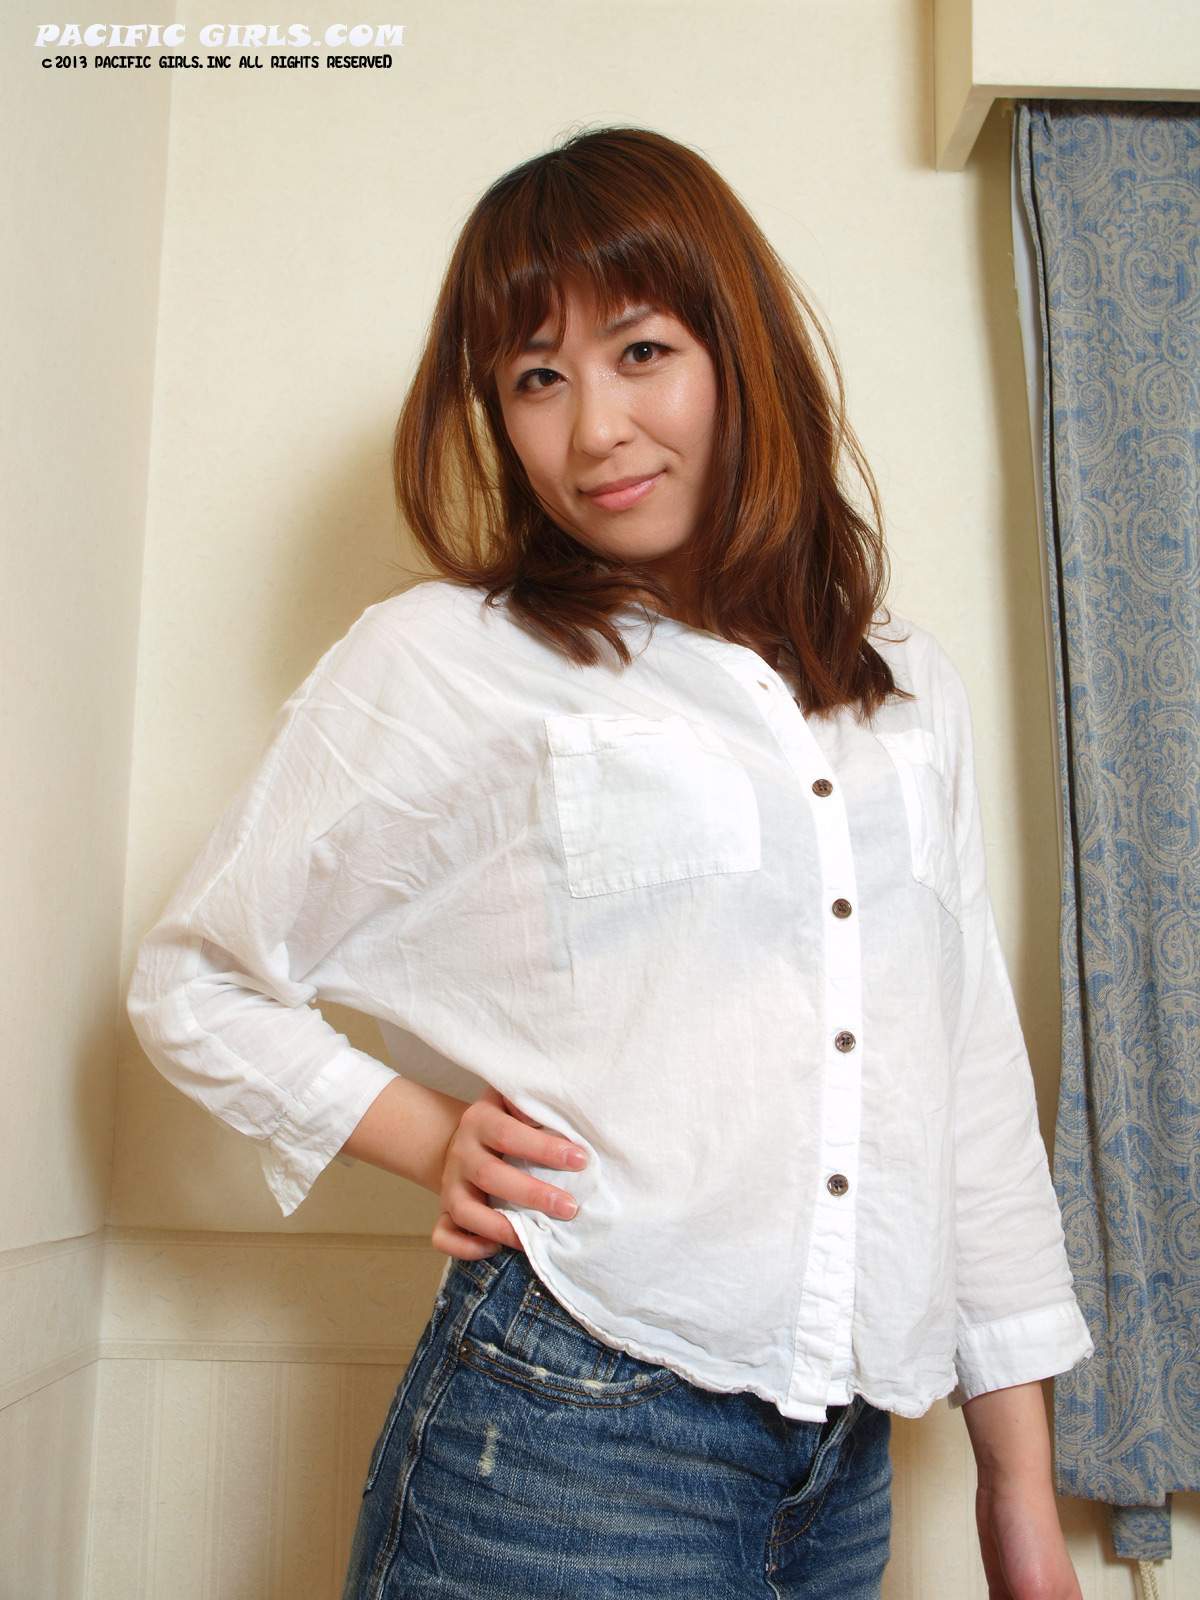 PacificGirls 834 Title: [PacificGirls] 第834弾「一人エッチでいきまくり お漏らししちゃった」 Size&Files: 253mb,  562pics. Format: jpg. Download: